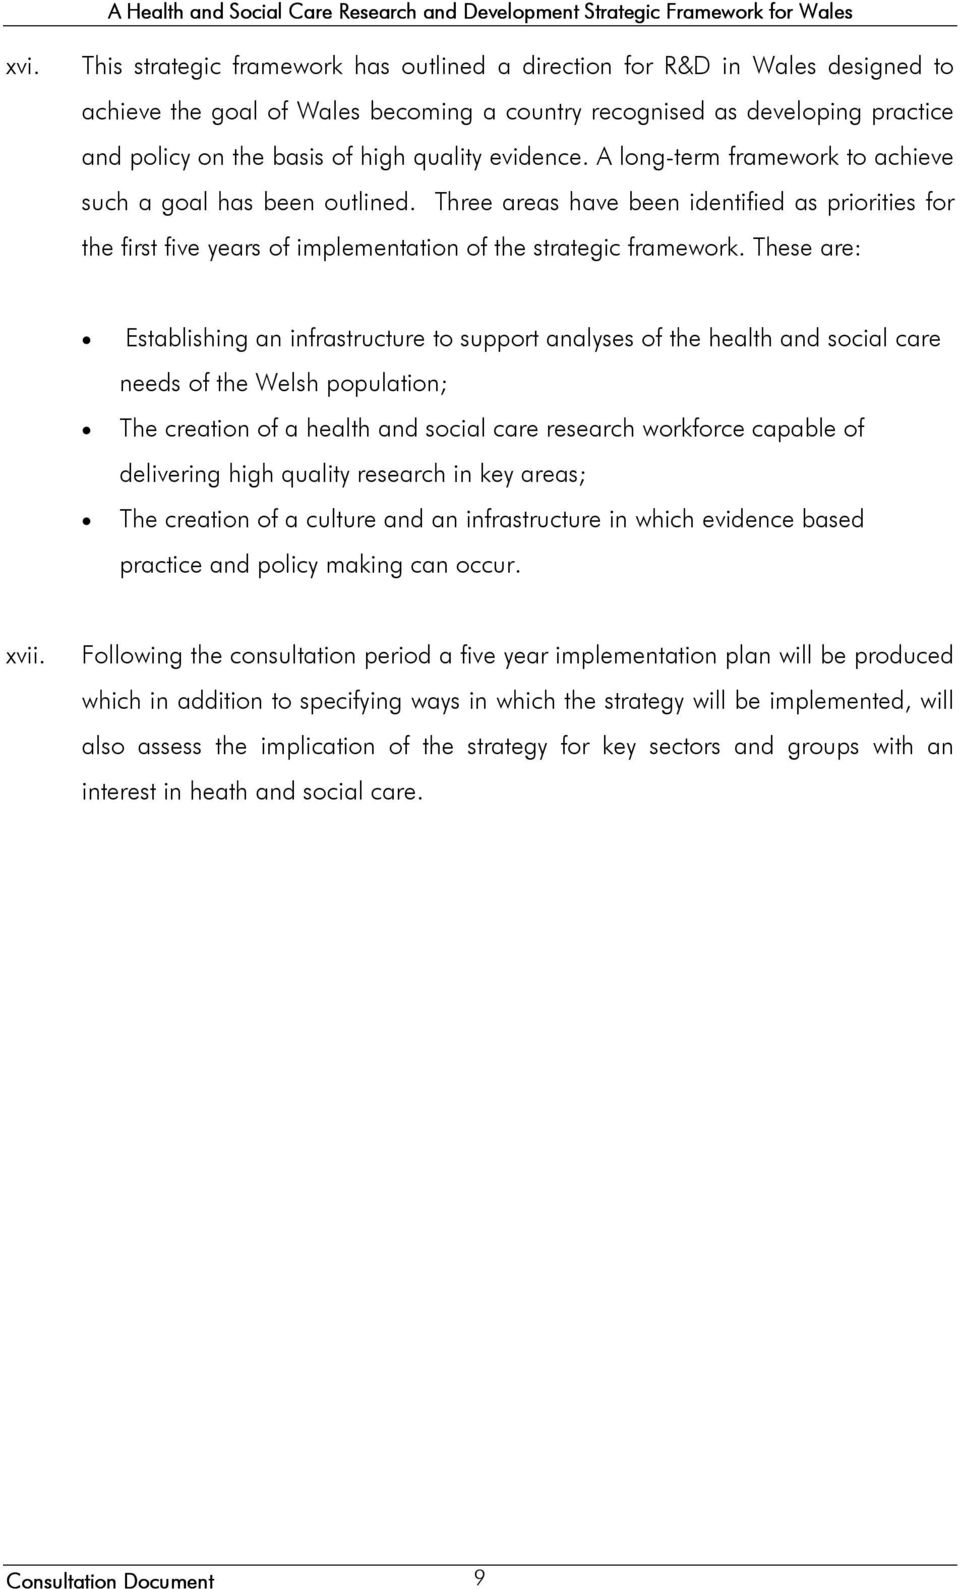 These are: Establishing an infrastructure to support analyses of the health and social care needs of the Welsh population; The creation of a health and social care research workforce capable of